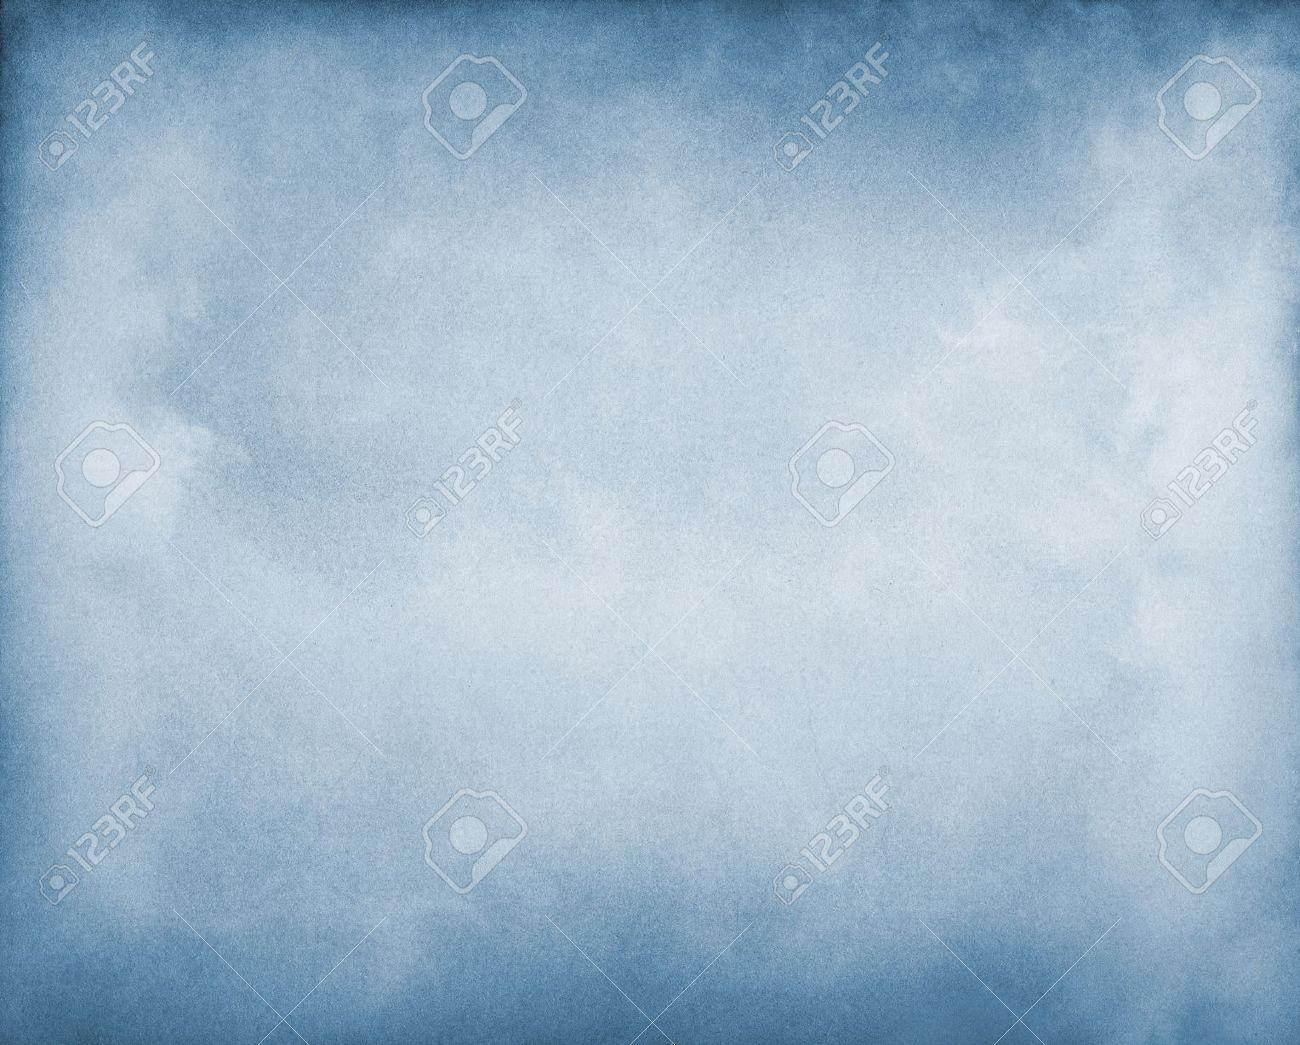 Fog and clouds on a blue paper background  Image displays a